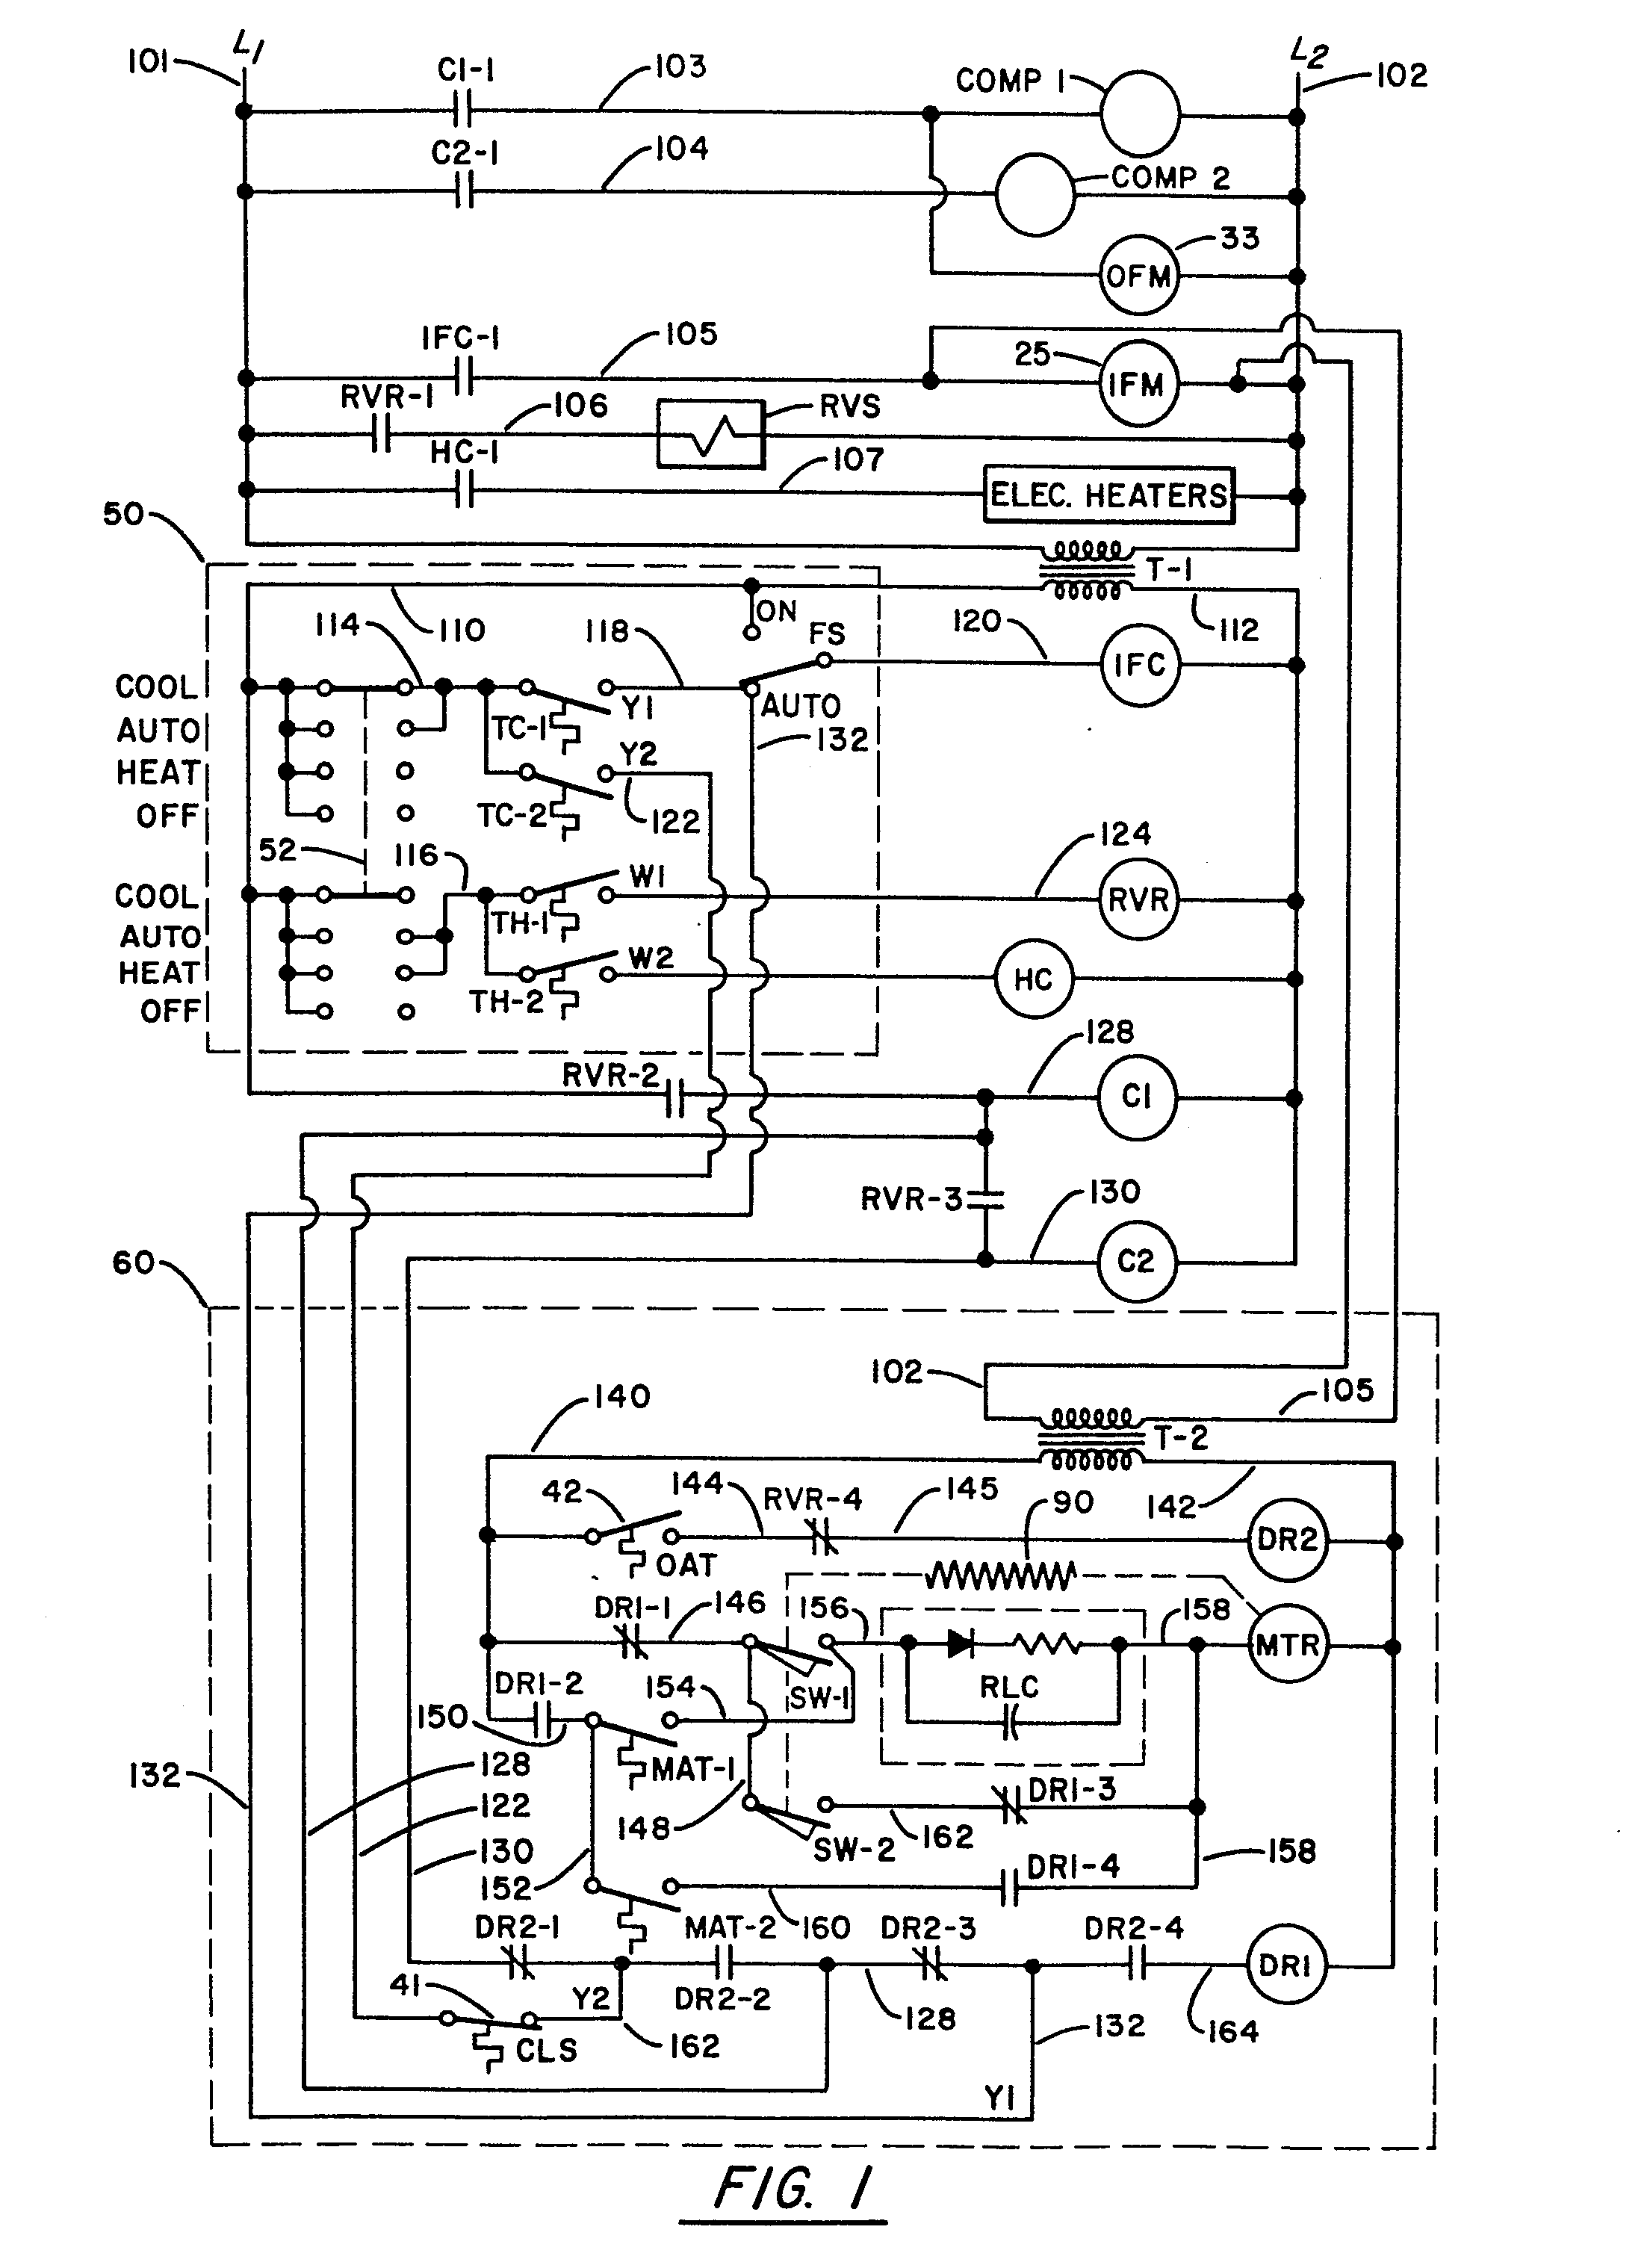 Trane Economizer Wiring Diagrams Simple Guide About Diagram Heat Pump Condenser Fan Patent Ep0080838a1 Air Conditioning Control